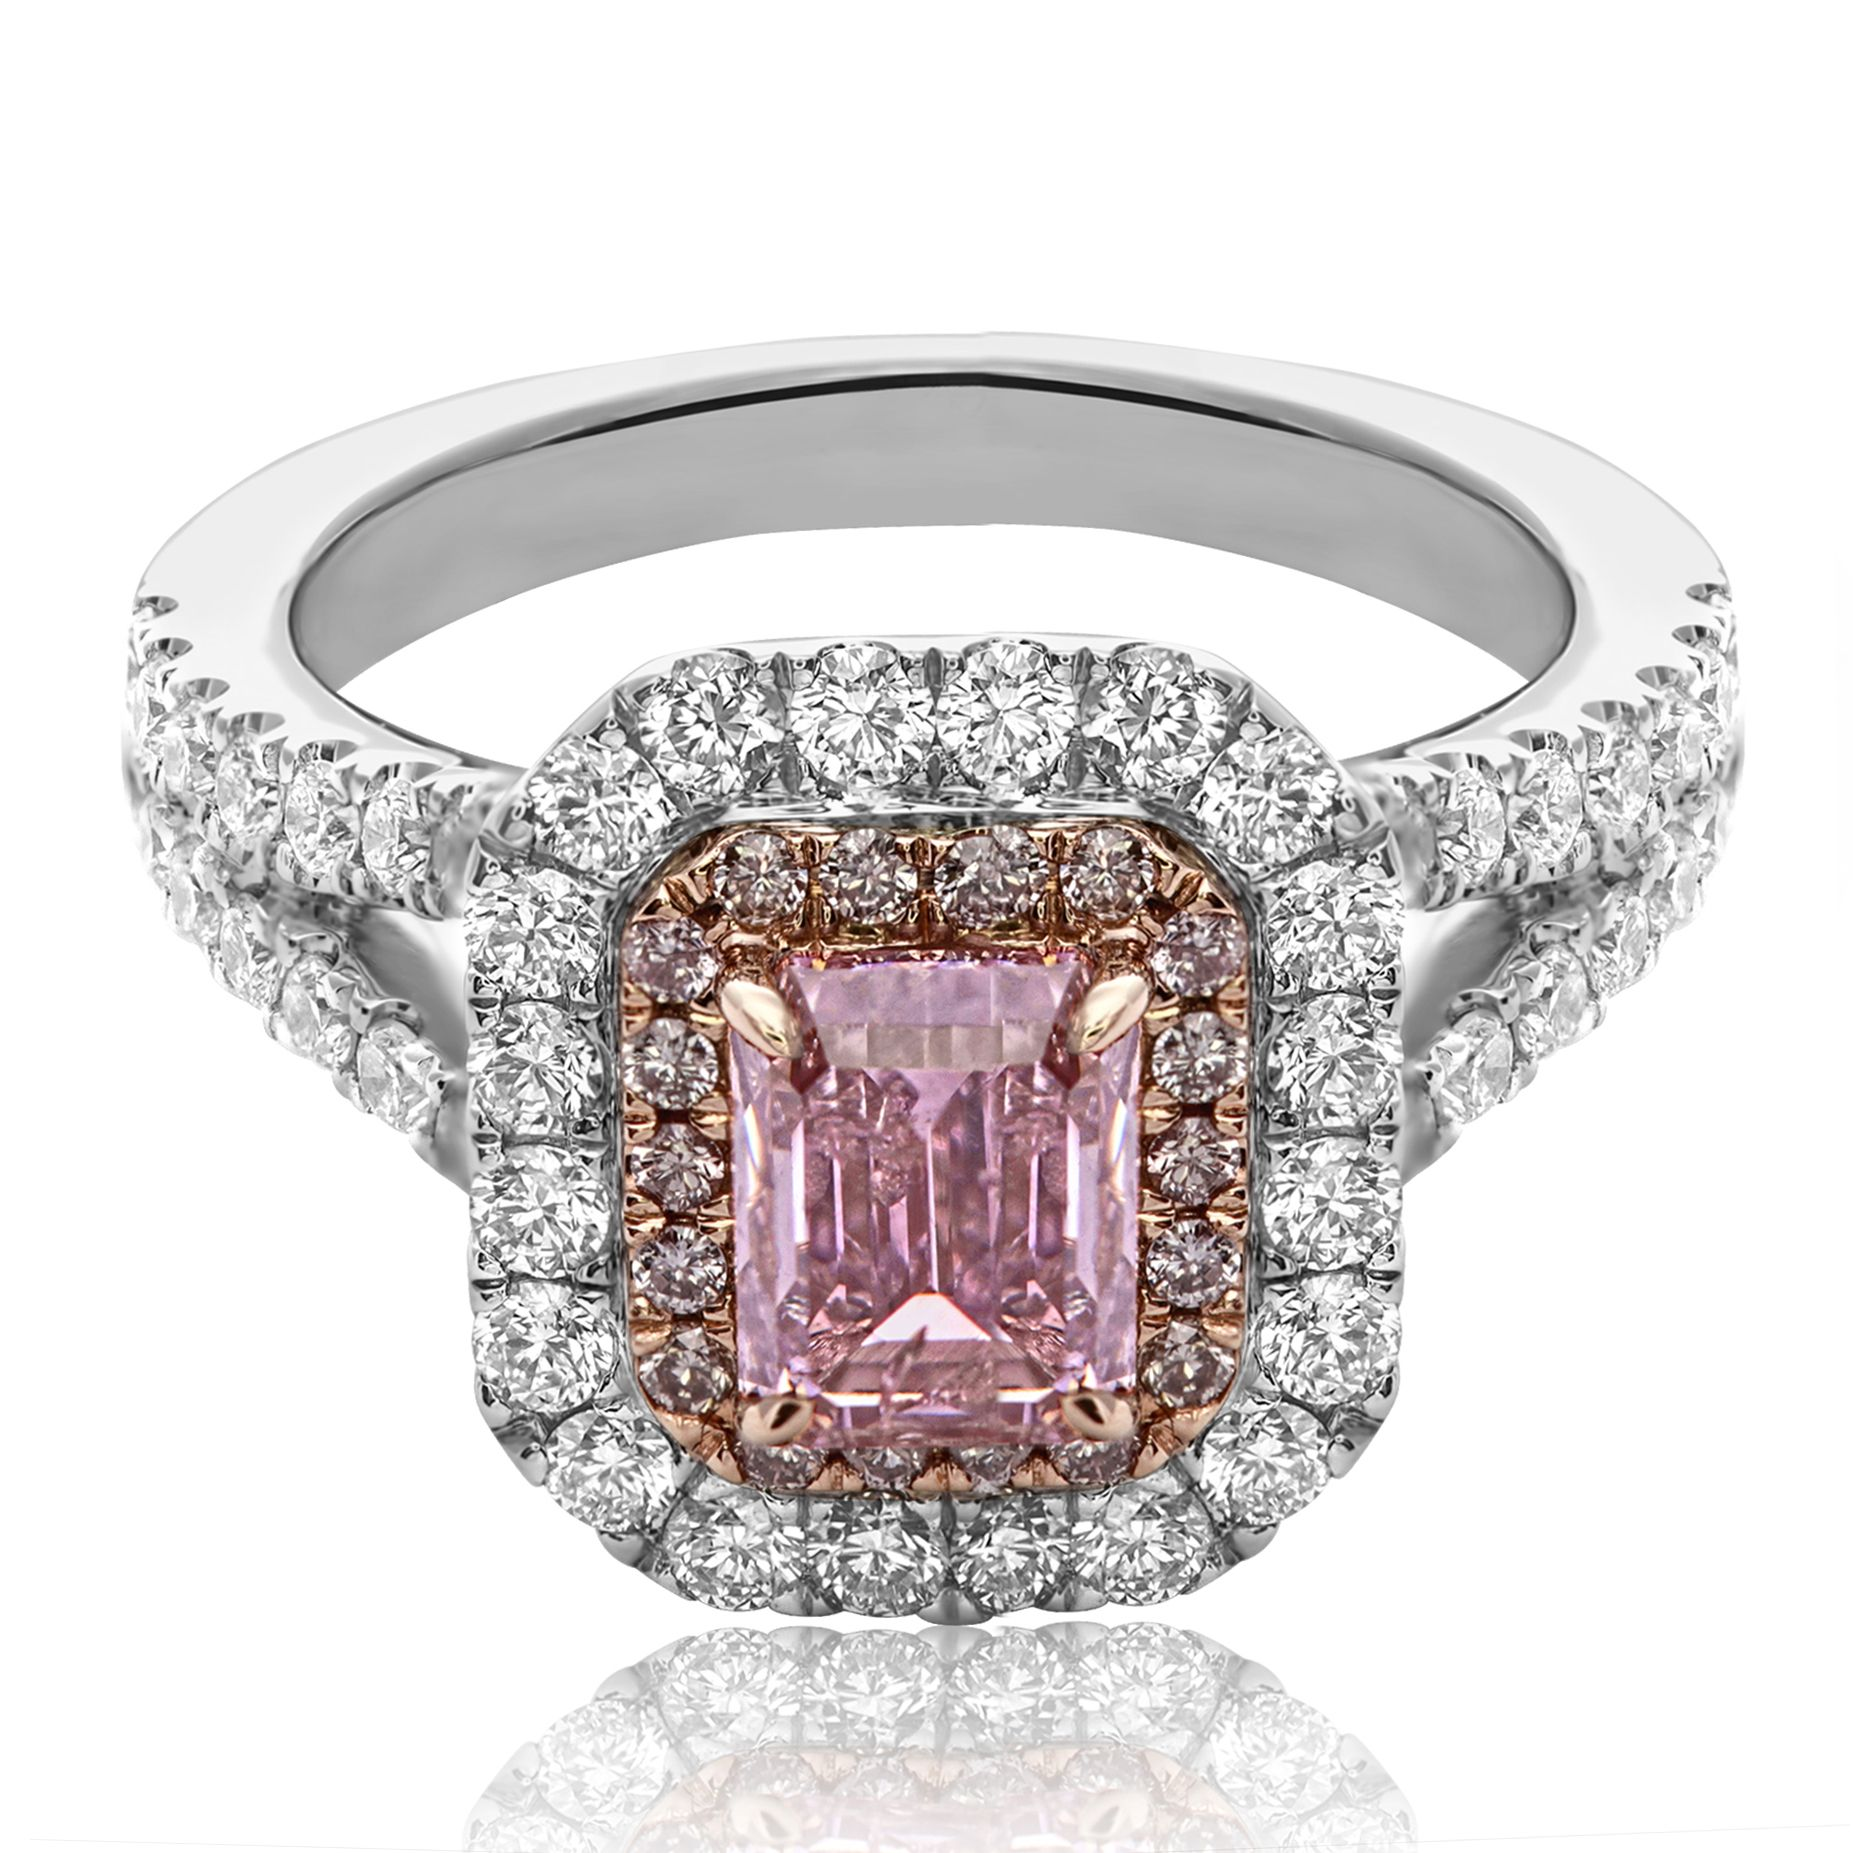 Two tone emerald cut Pink diamond engagement ring surrounded by a